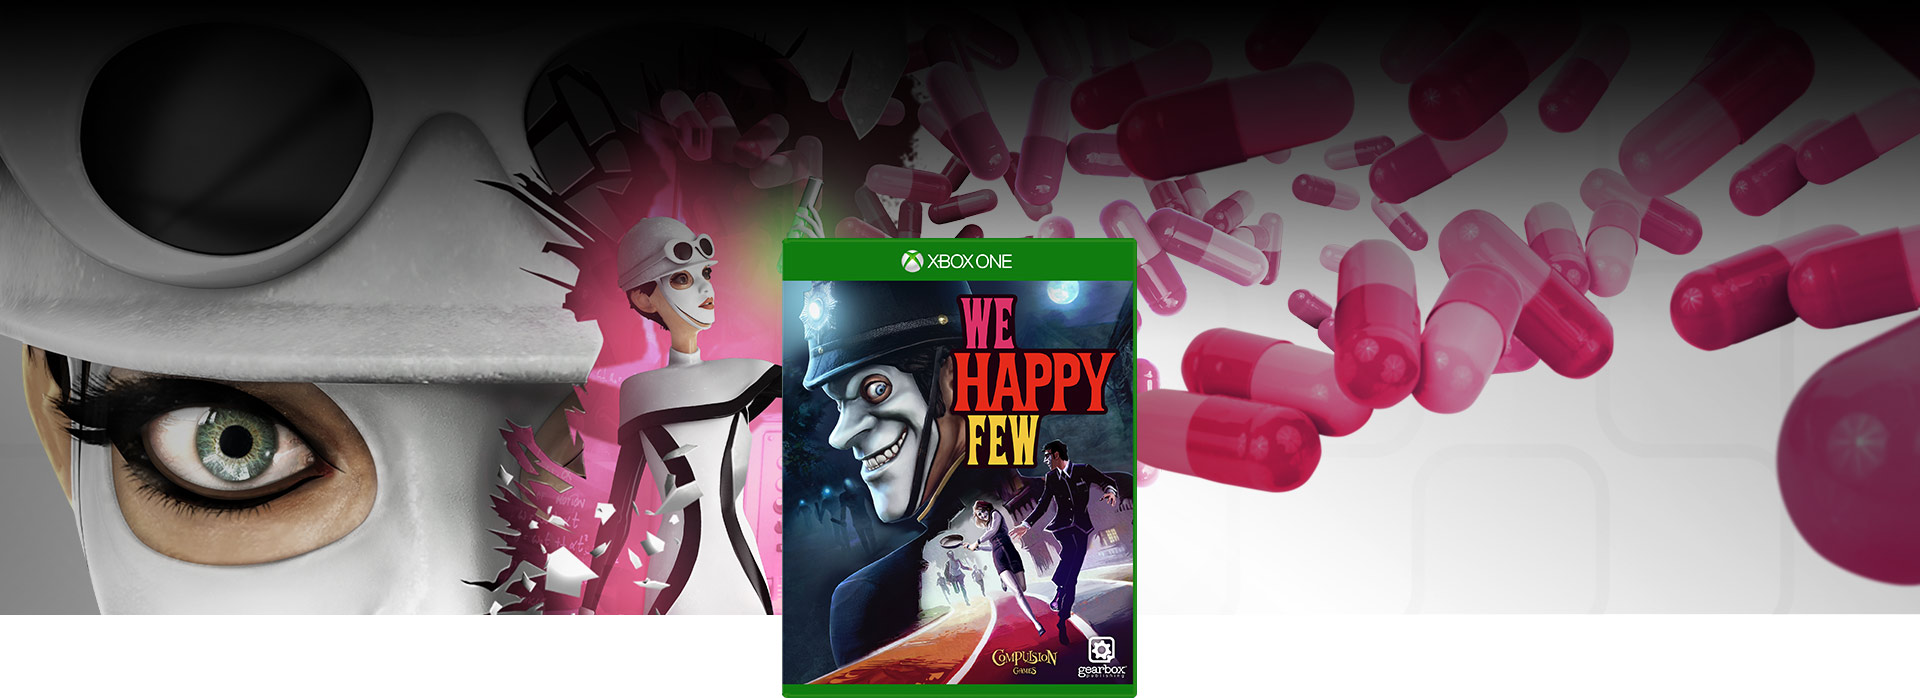 Imagen de la caja de We Happy Few, fondo de collage de Sally Boyle vestida de mod y con sus píldoras Joy.